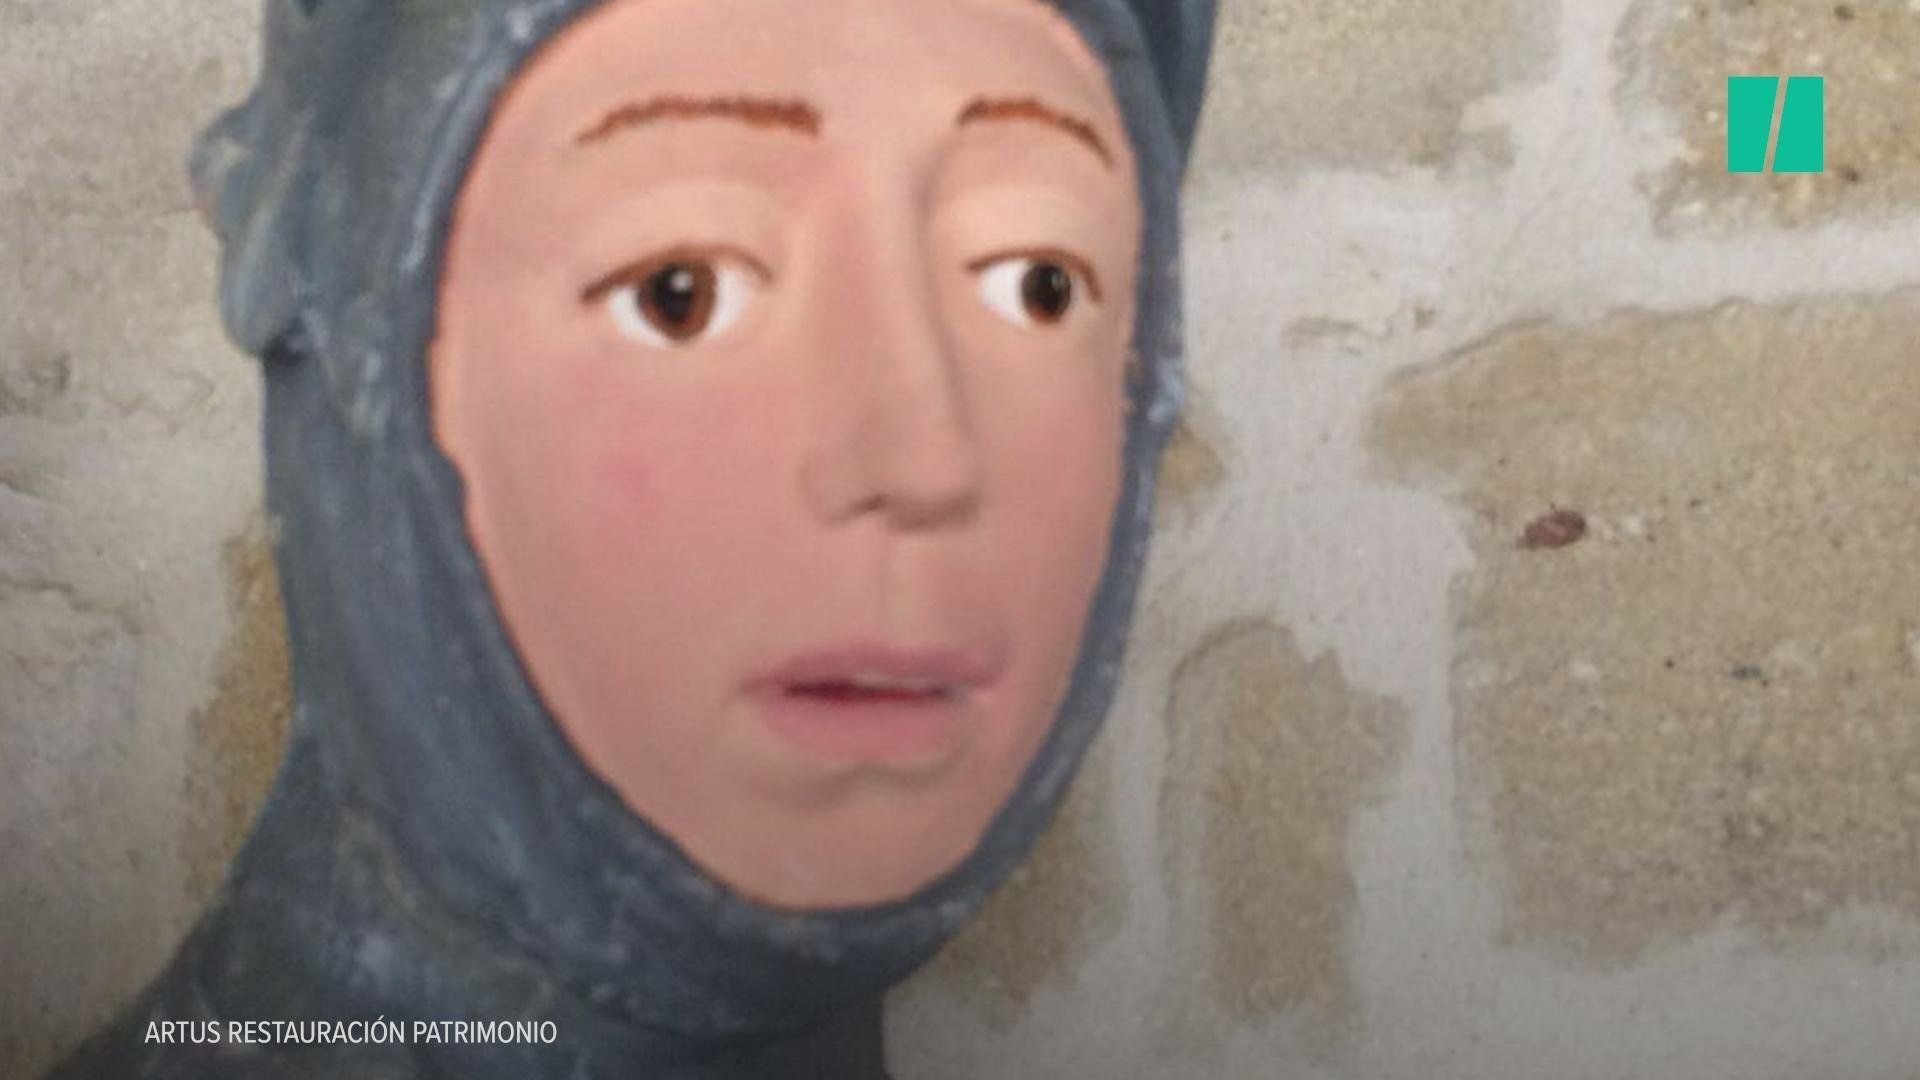 Art Restoration Of 500-Year-Old Statue Goes Wrong